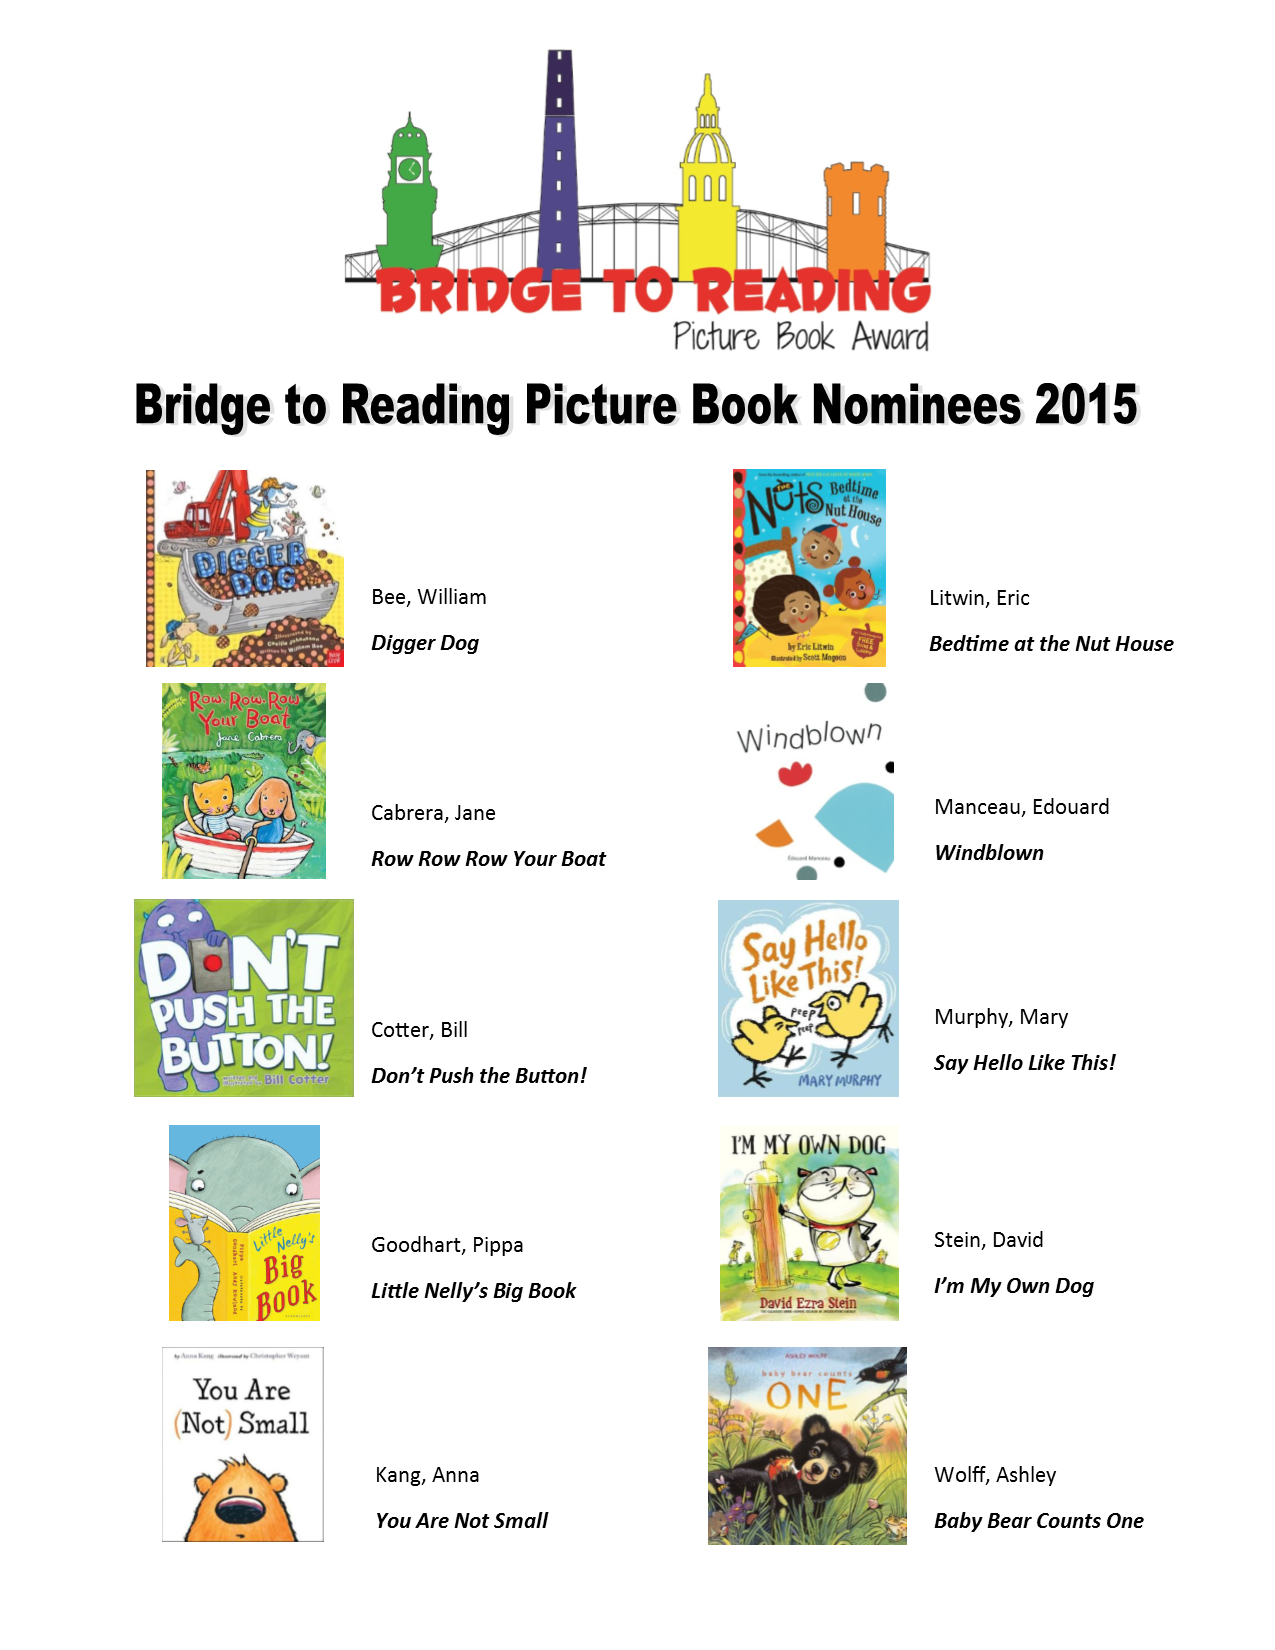 Bridge to Reading Book Nominees 2015 flyer